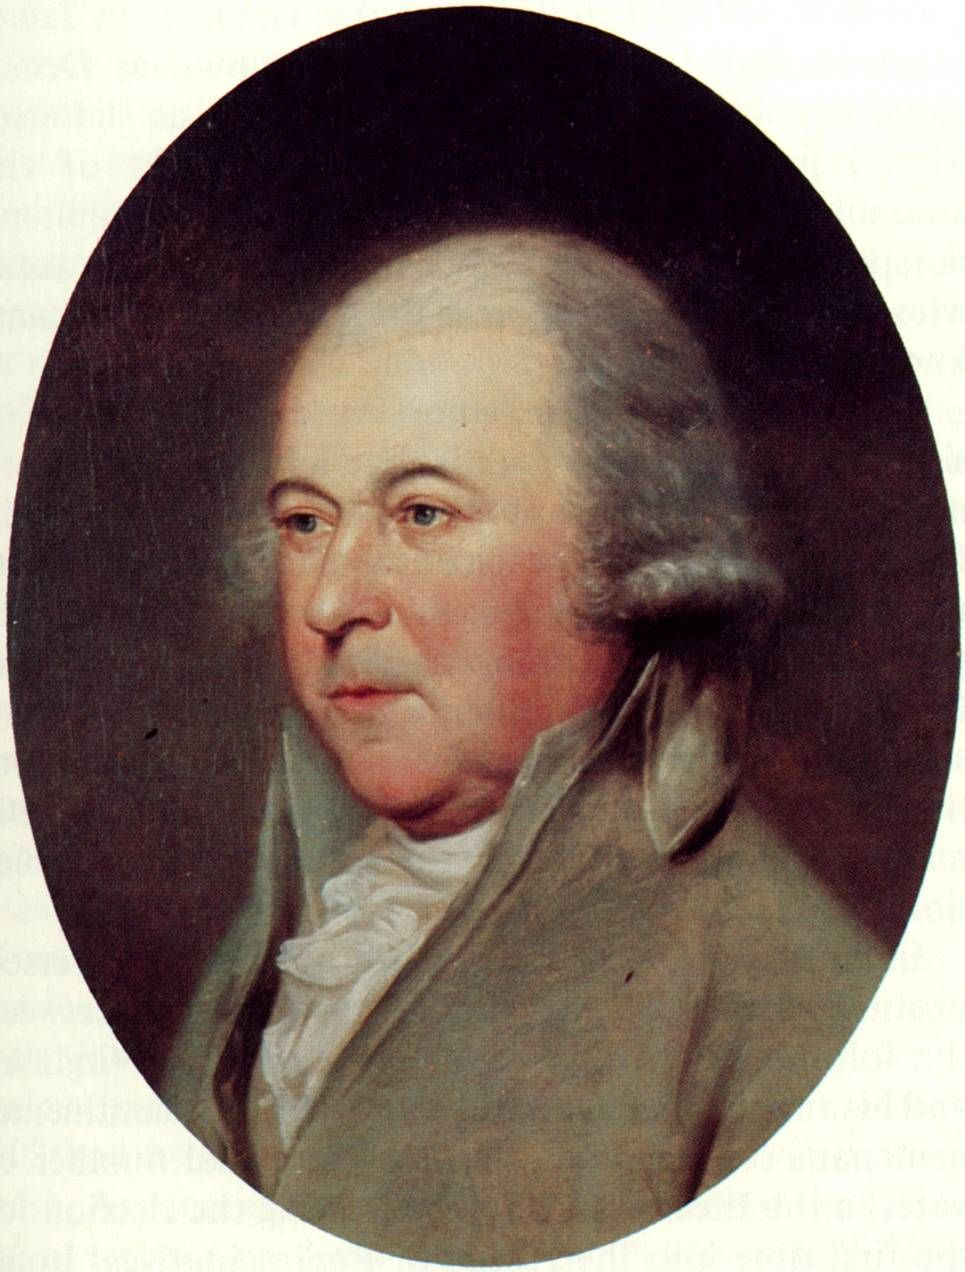 17 best images about 2 john adams abigail smith adams on 17 best images about 2 john adams abigail smith adams thomas jefferson the white and sons